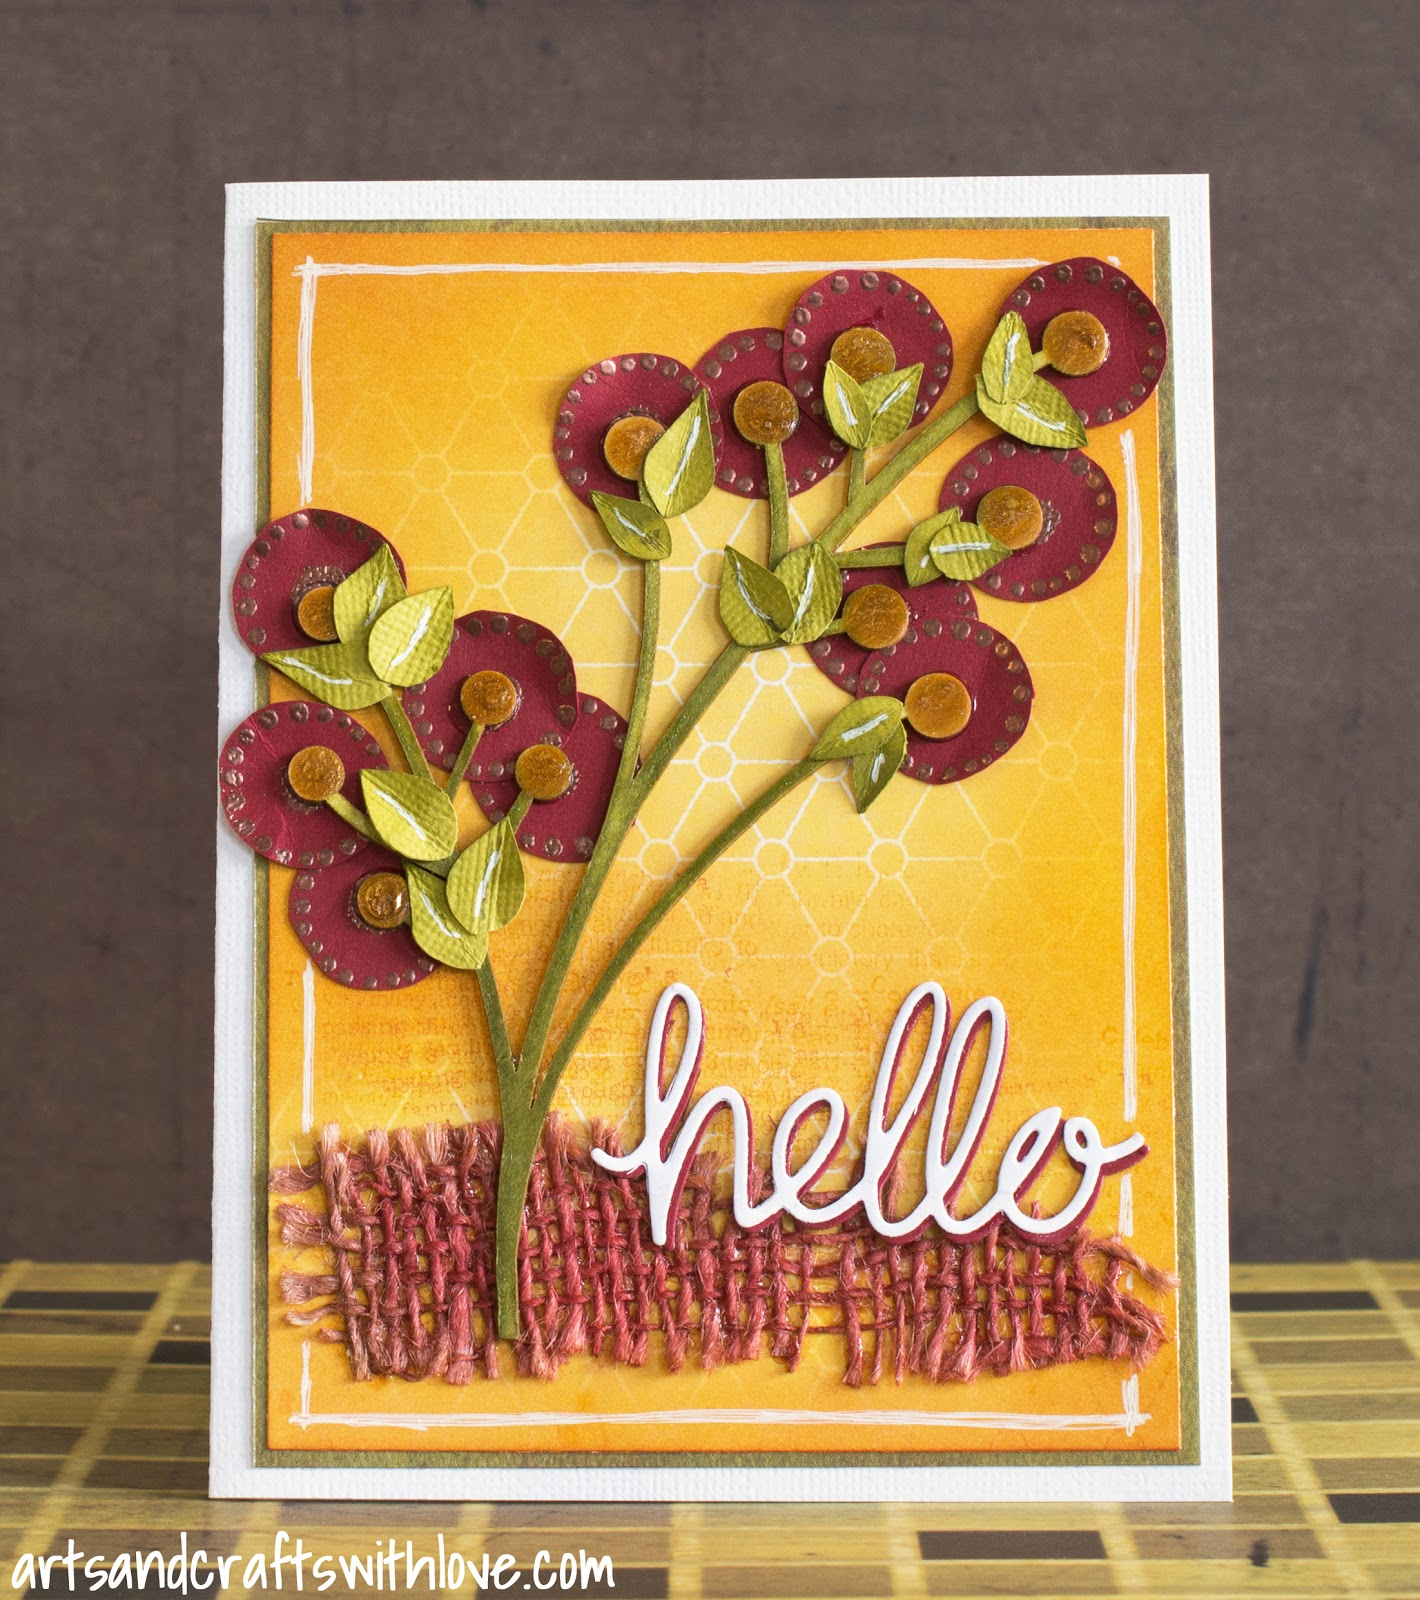 Cardmaking: Colourful card for a friend